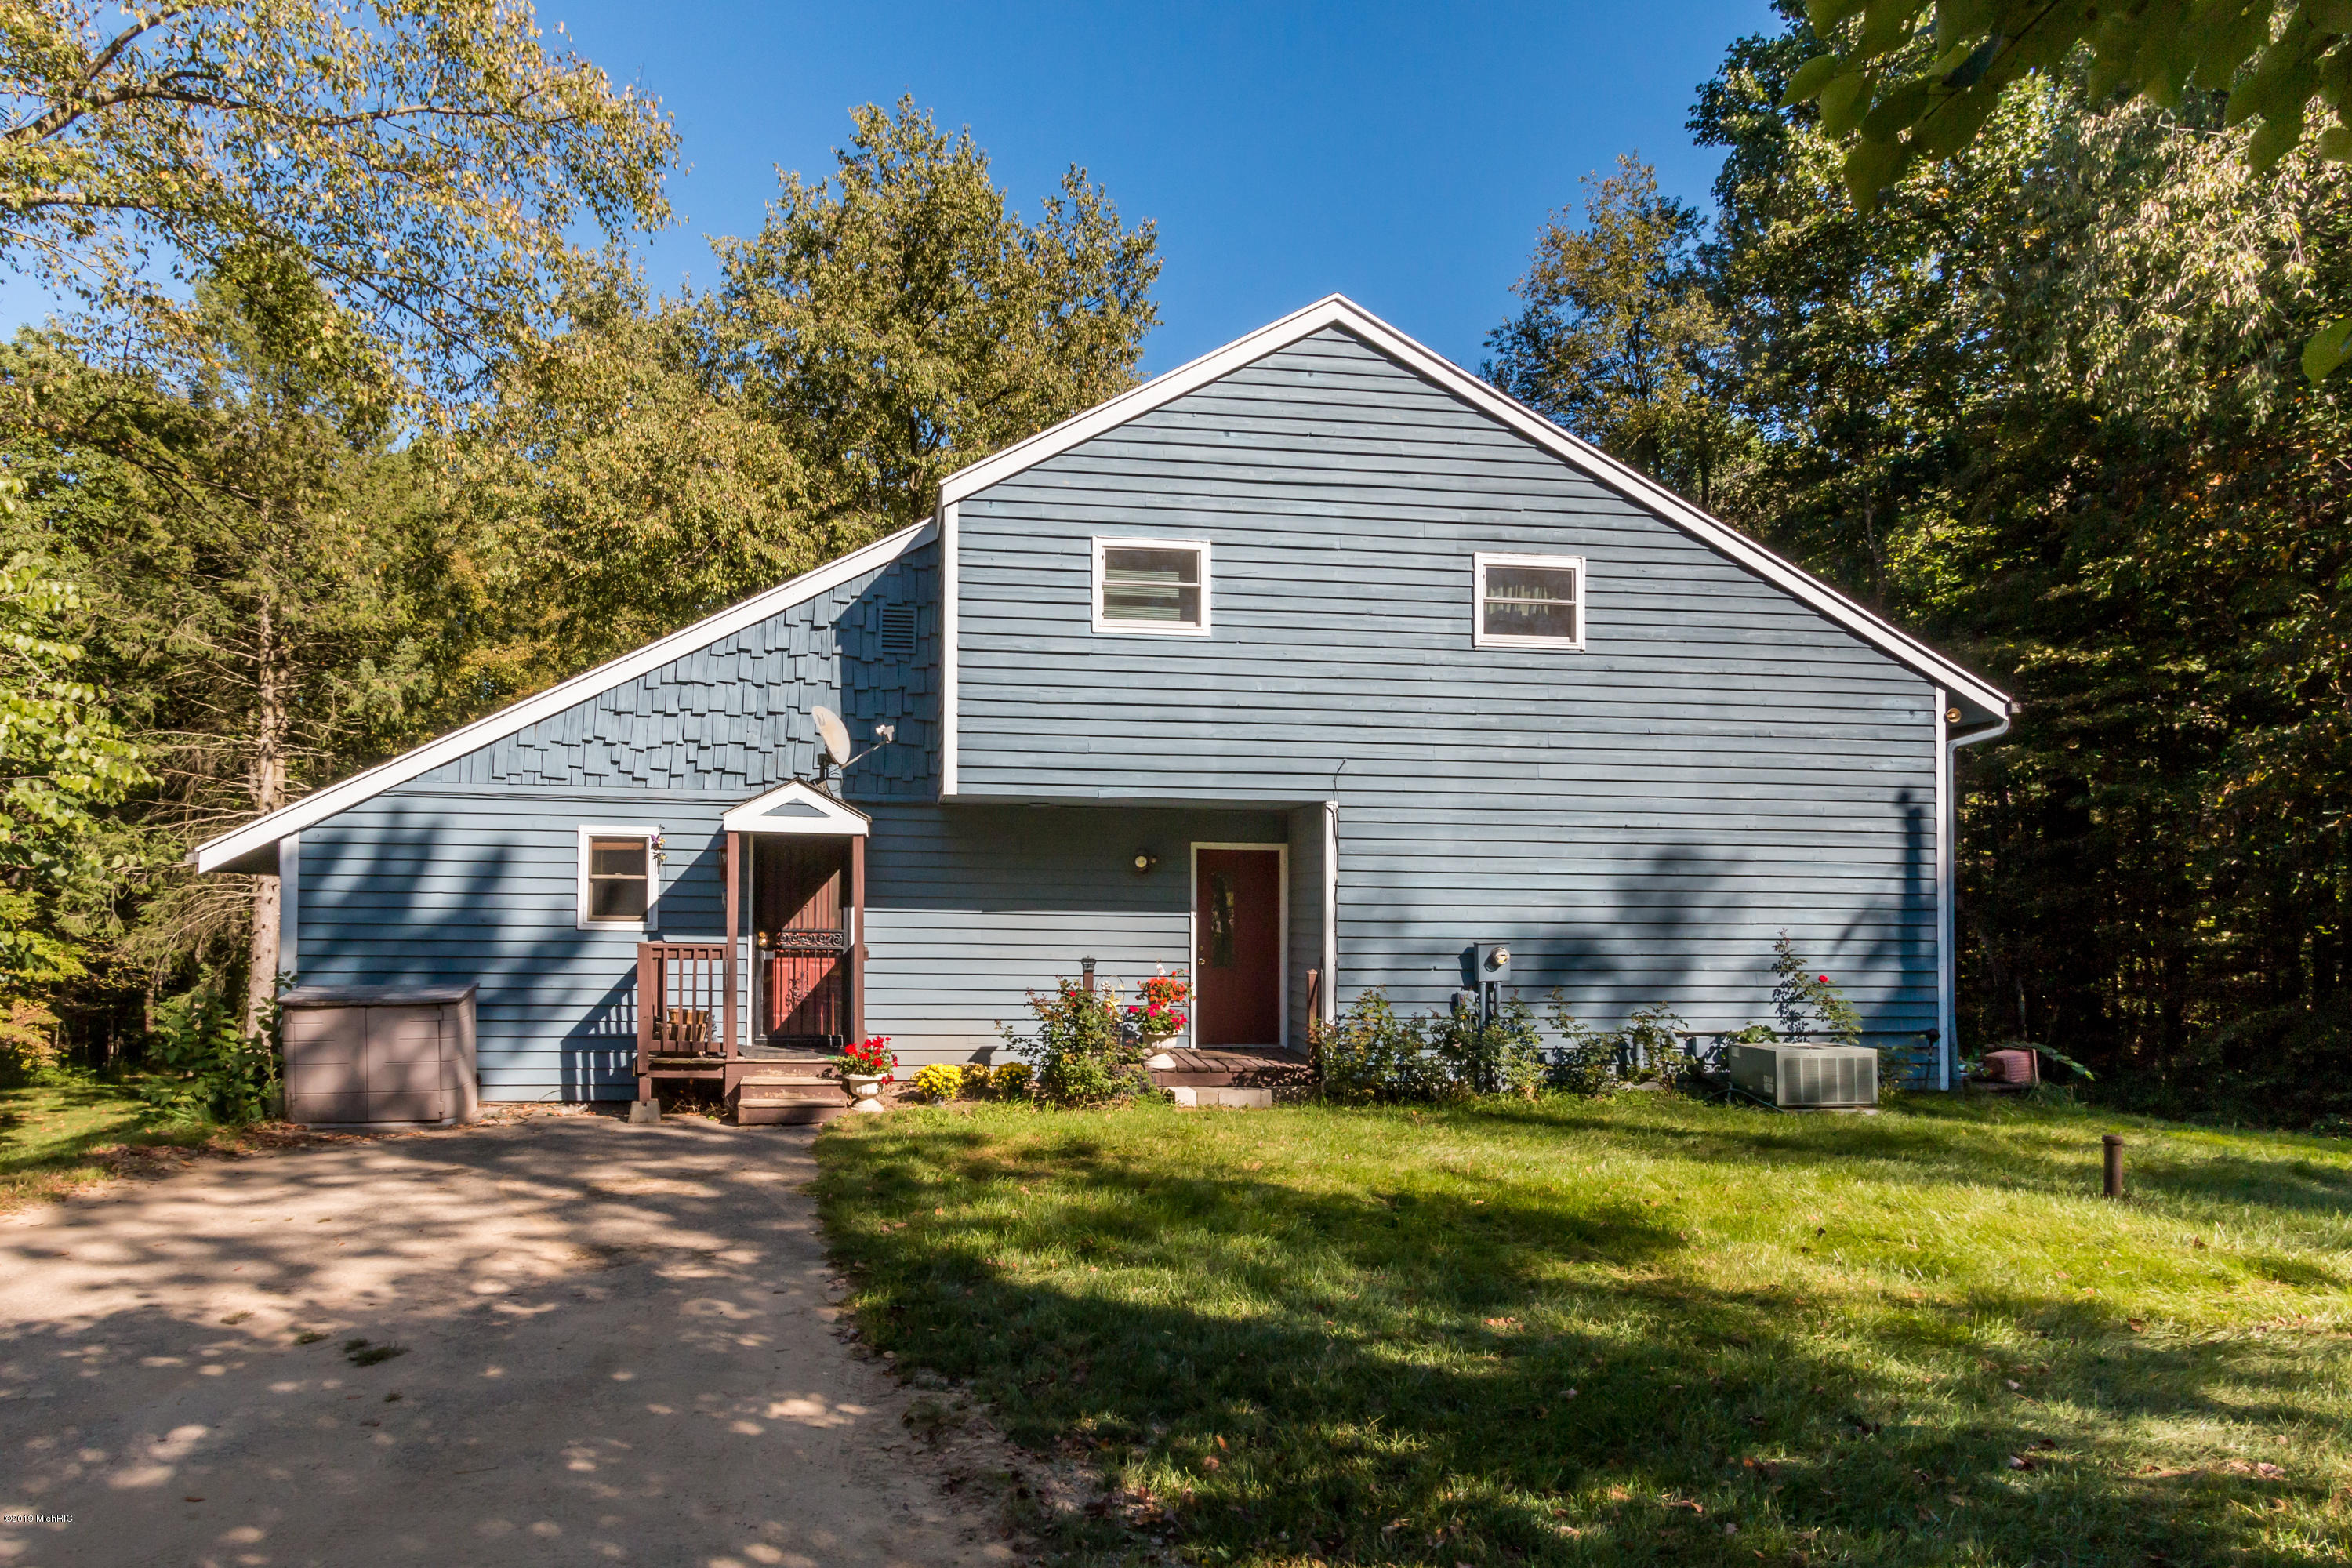 Photo for 68241 52nd Street, Lawrence, MI 49064 (MLS # 19025234)